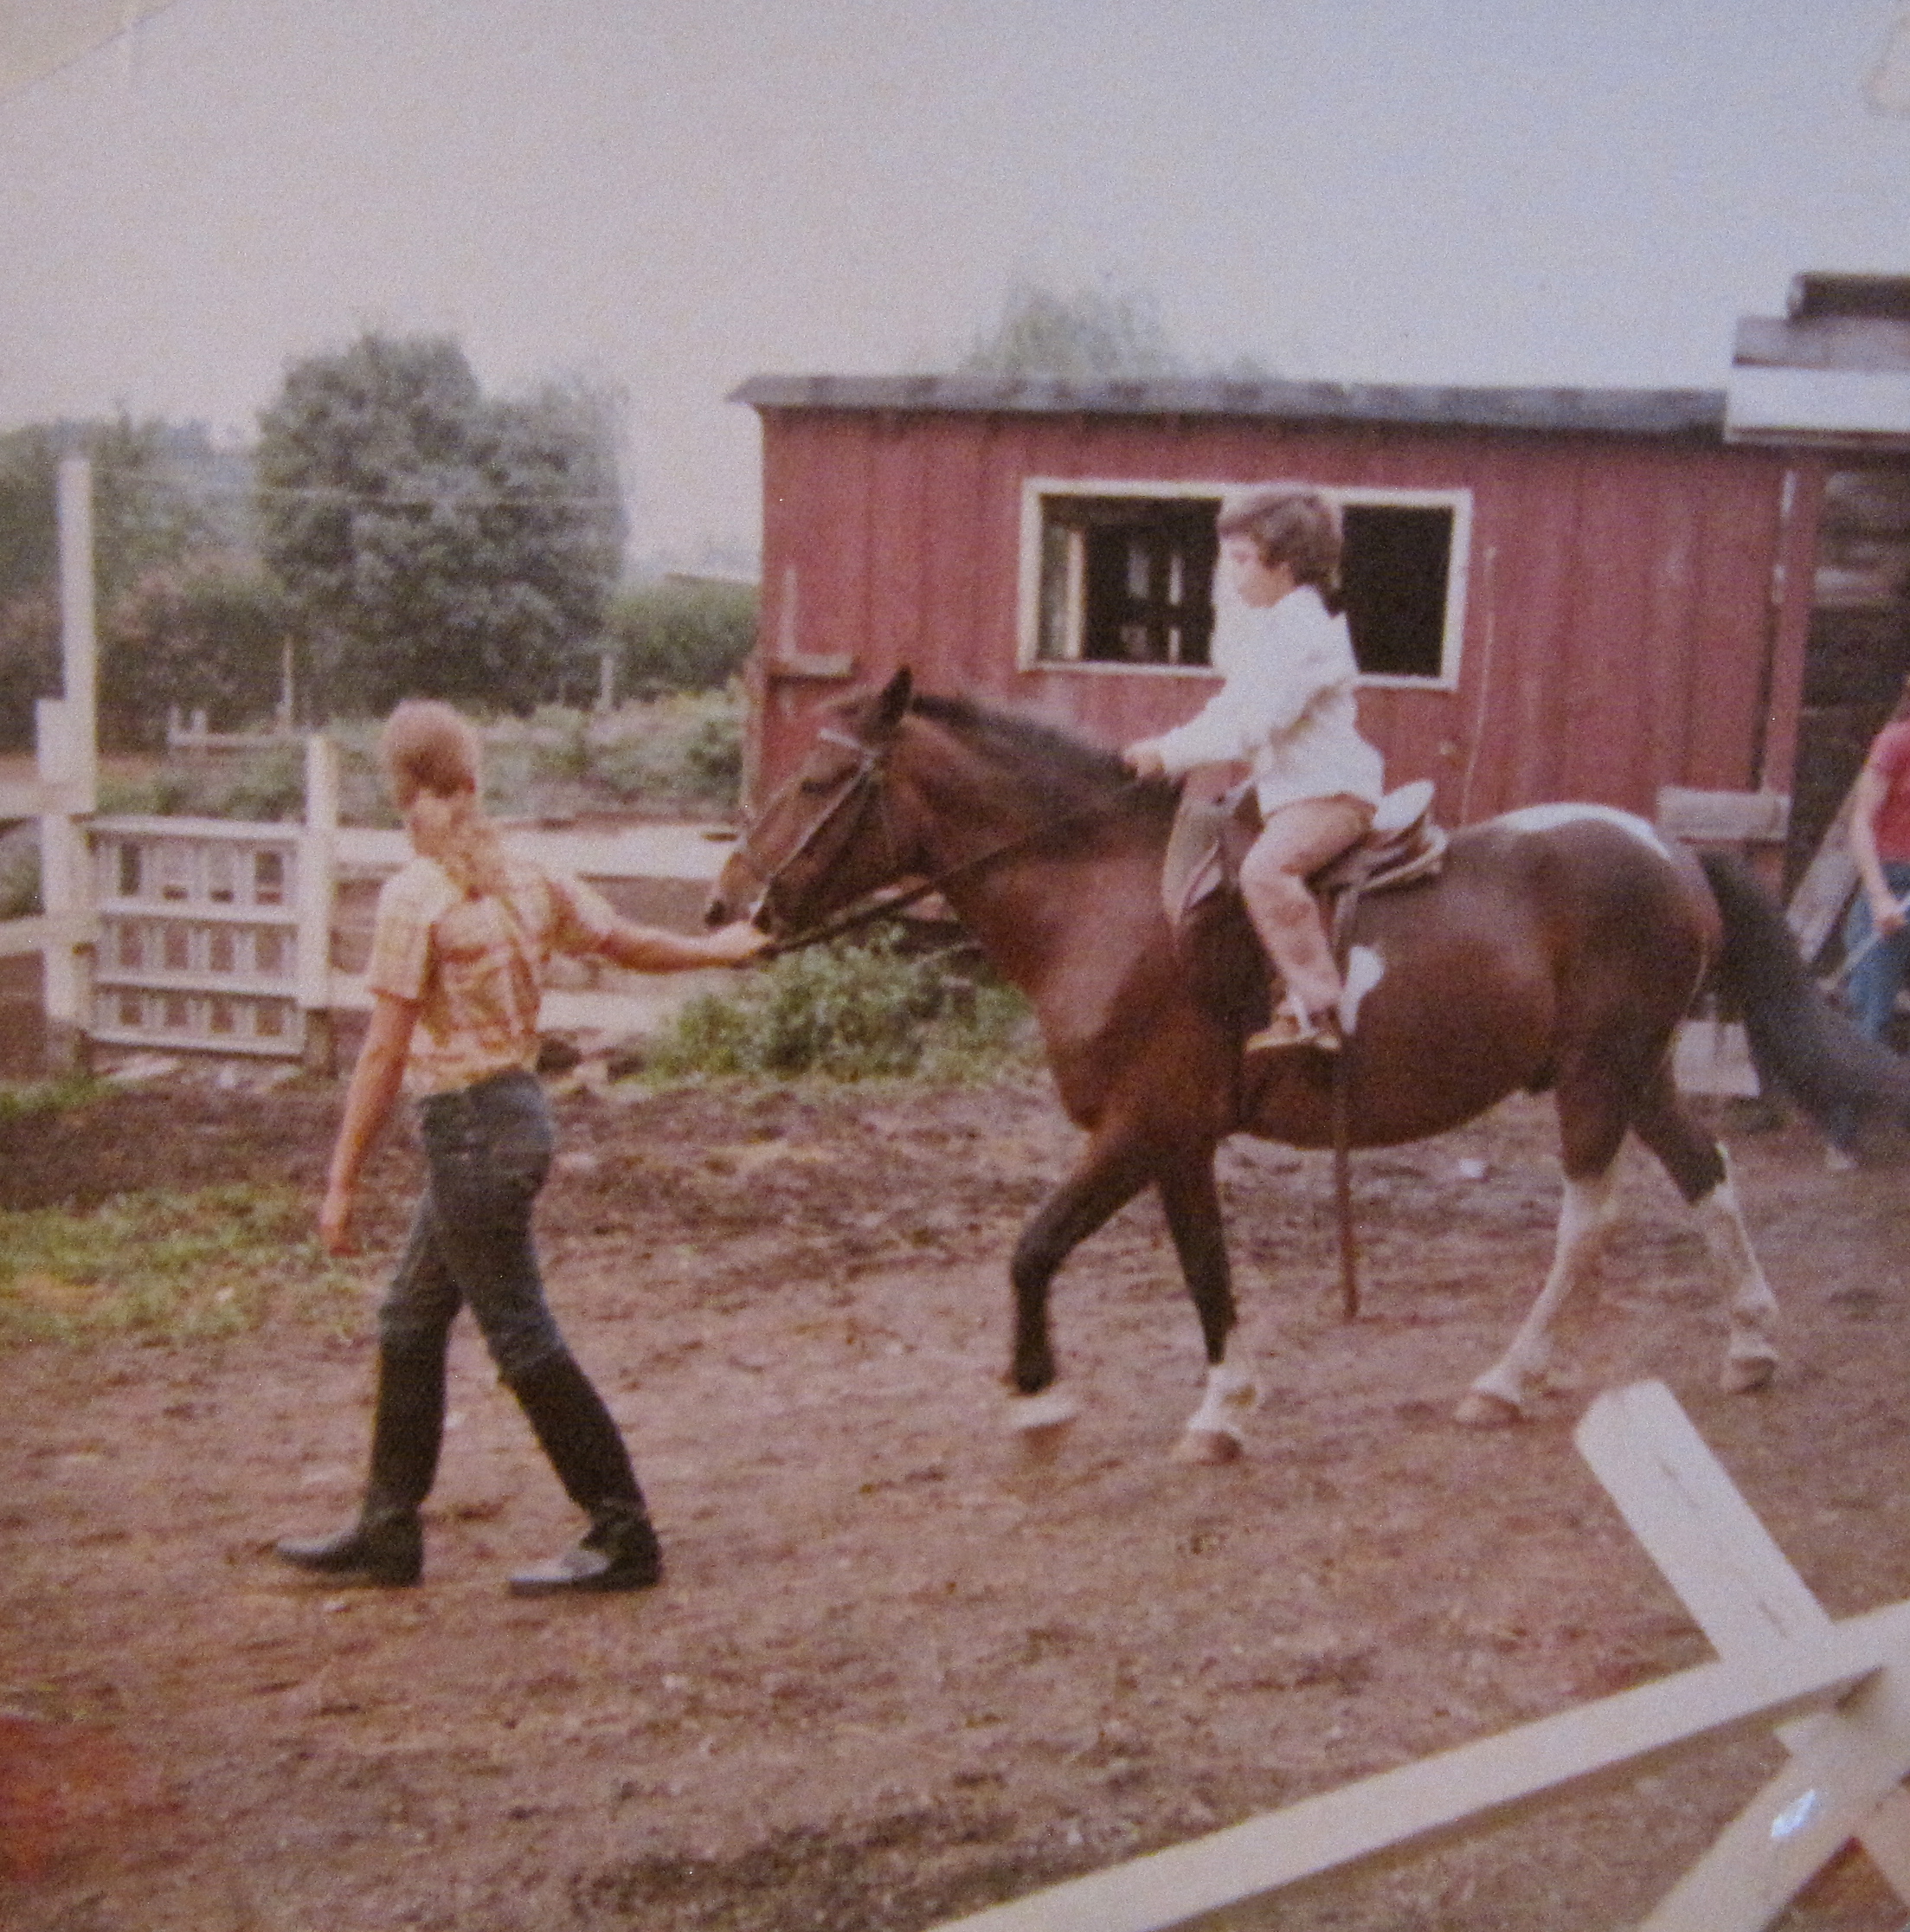 Riding my first favorite horse, Buddy, back in the 1970's at horse camp. To this day, one of my happiest memories.